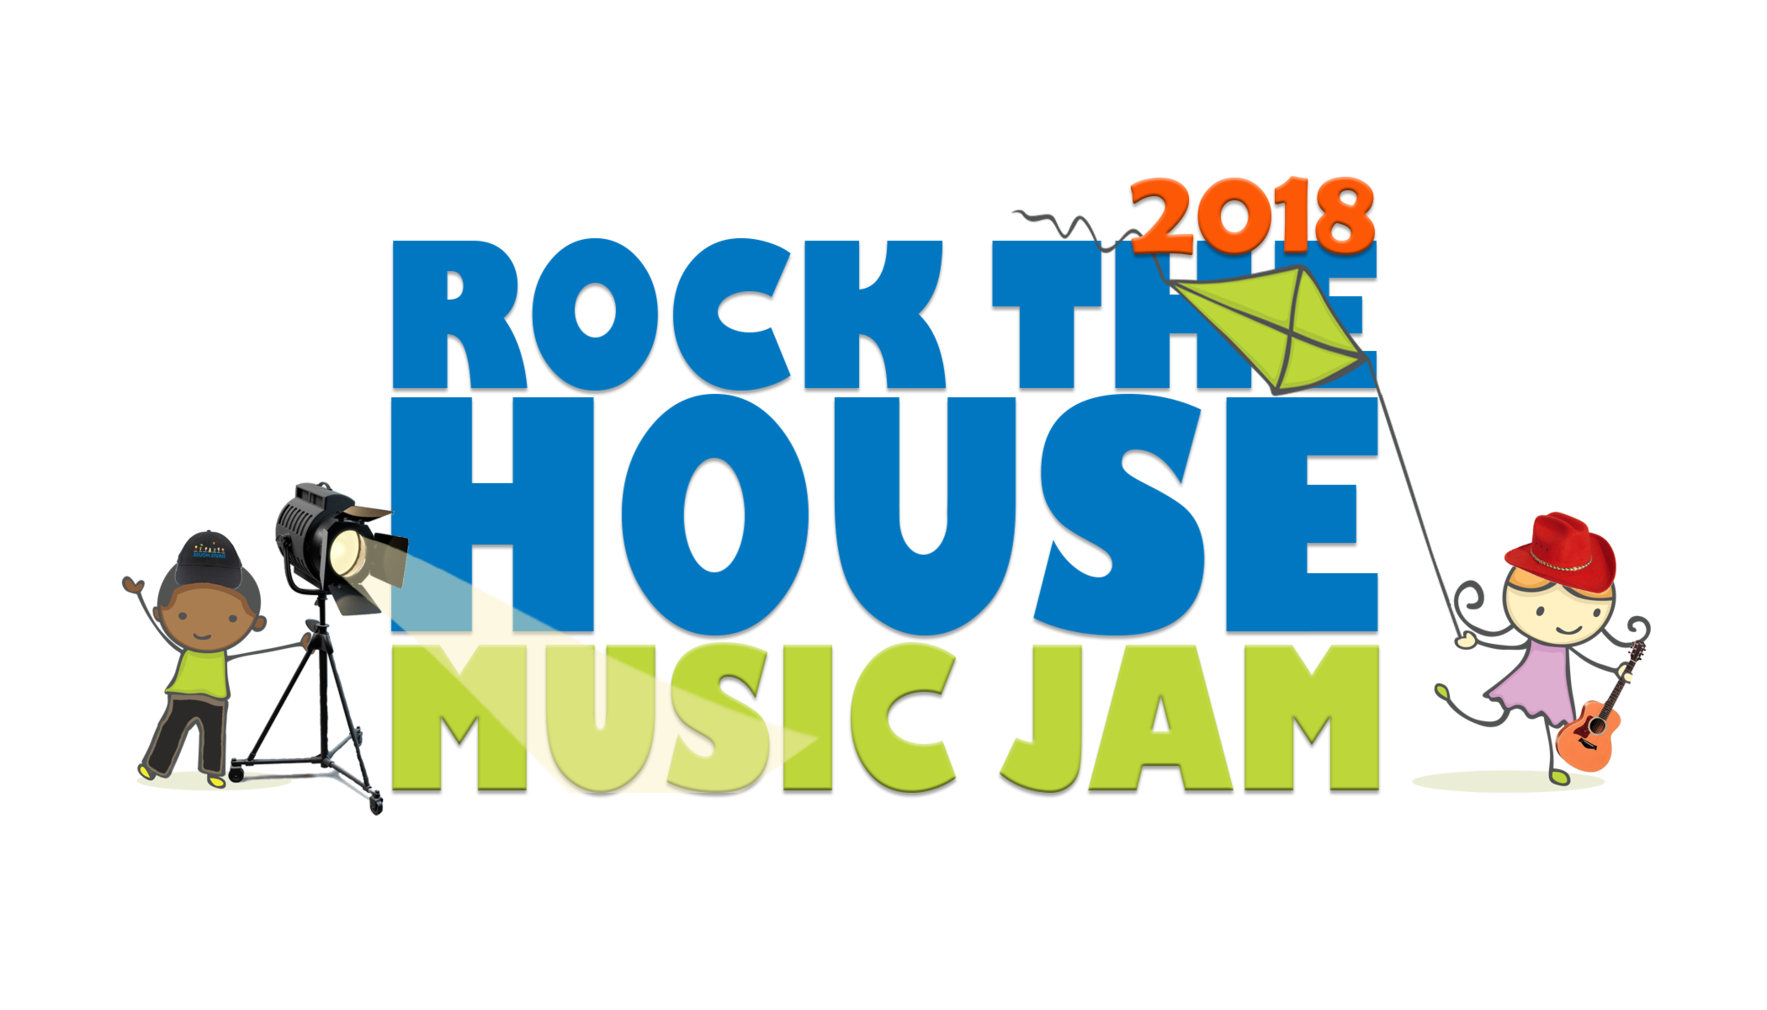 Rock the House Music Jam 2018 image